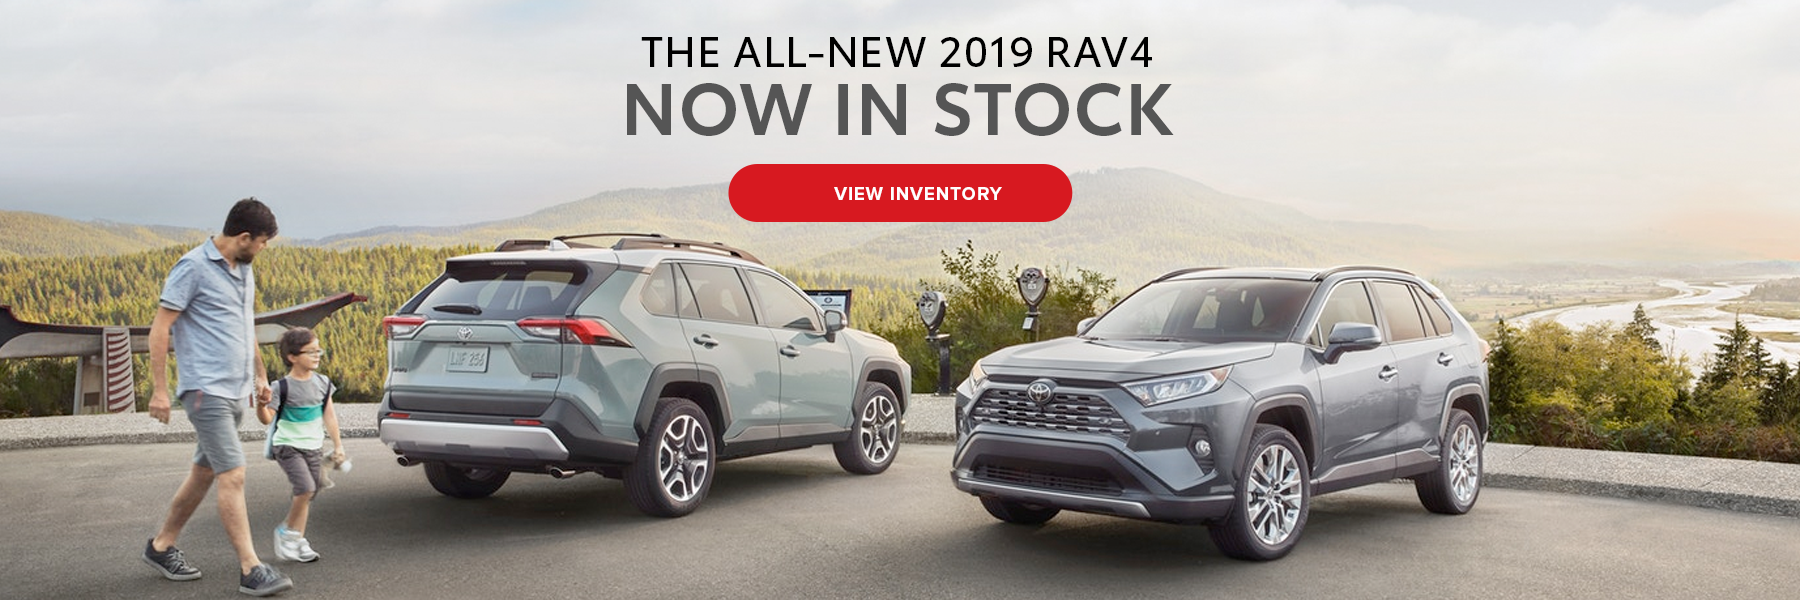 2019 RAV4 Now Available